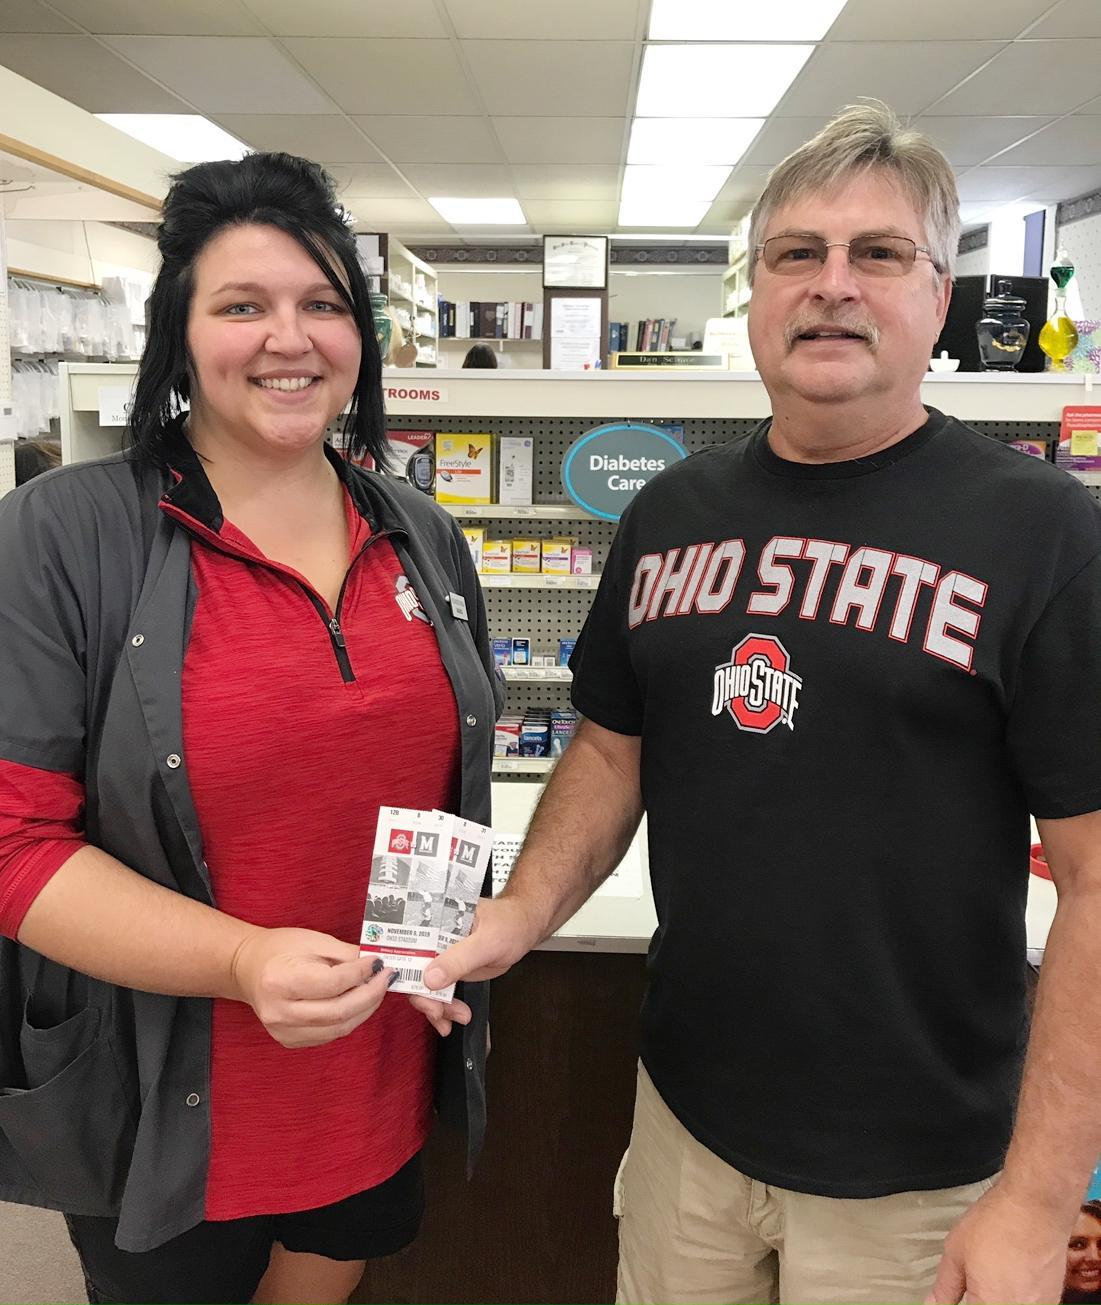 Gary Ricer, right, won two tickets for the Ohio State-Maryland game from Bellwood Drugs. Pictured presenting the tickets is Amanda Schumacher.